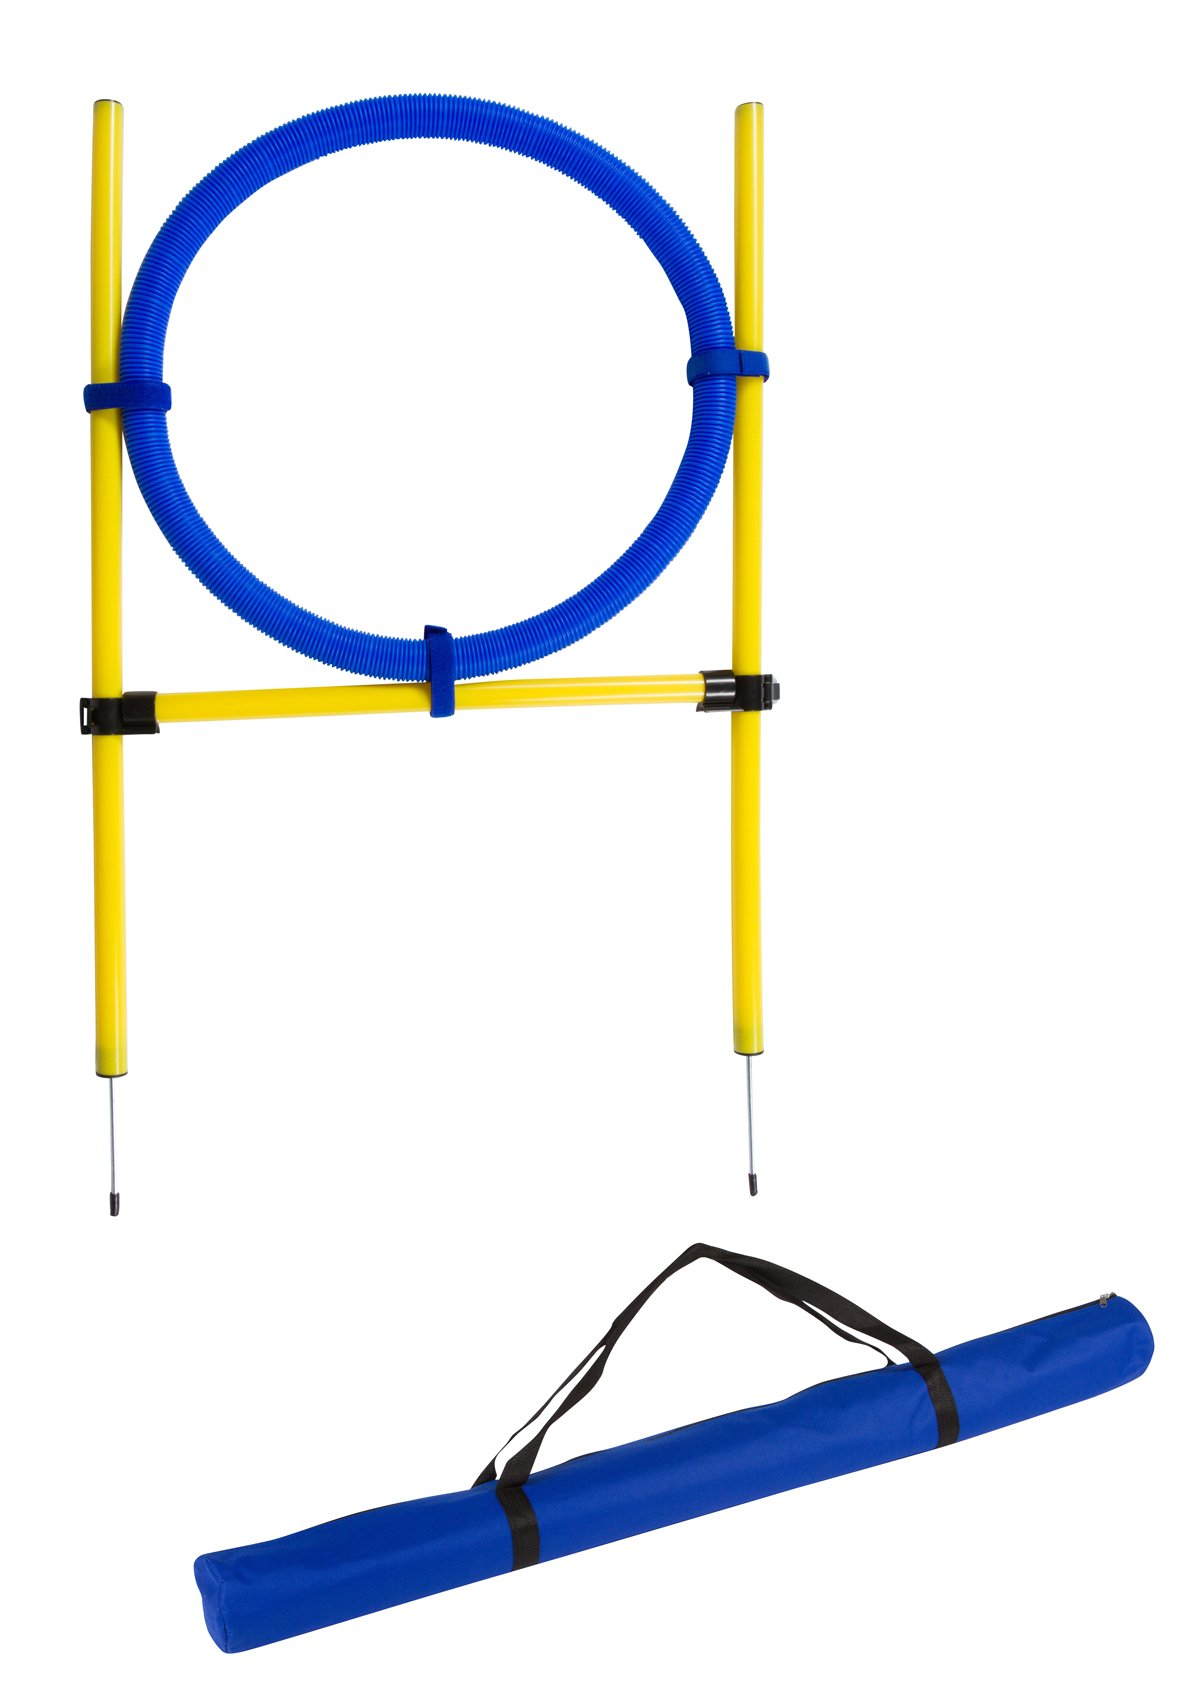 26'' Diameter Dog Agility Jumping Training Hoop with Carry Bag  By Trademark Innovations